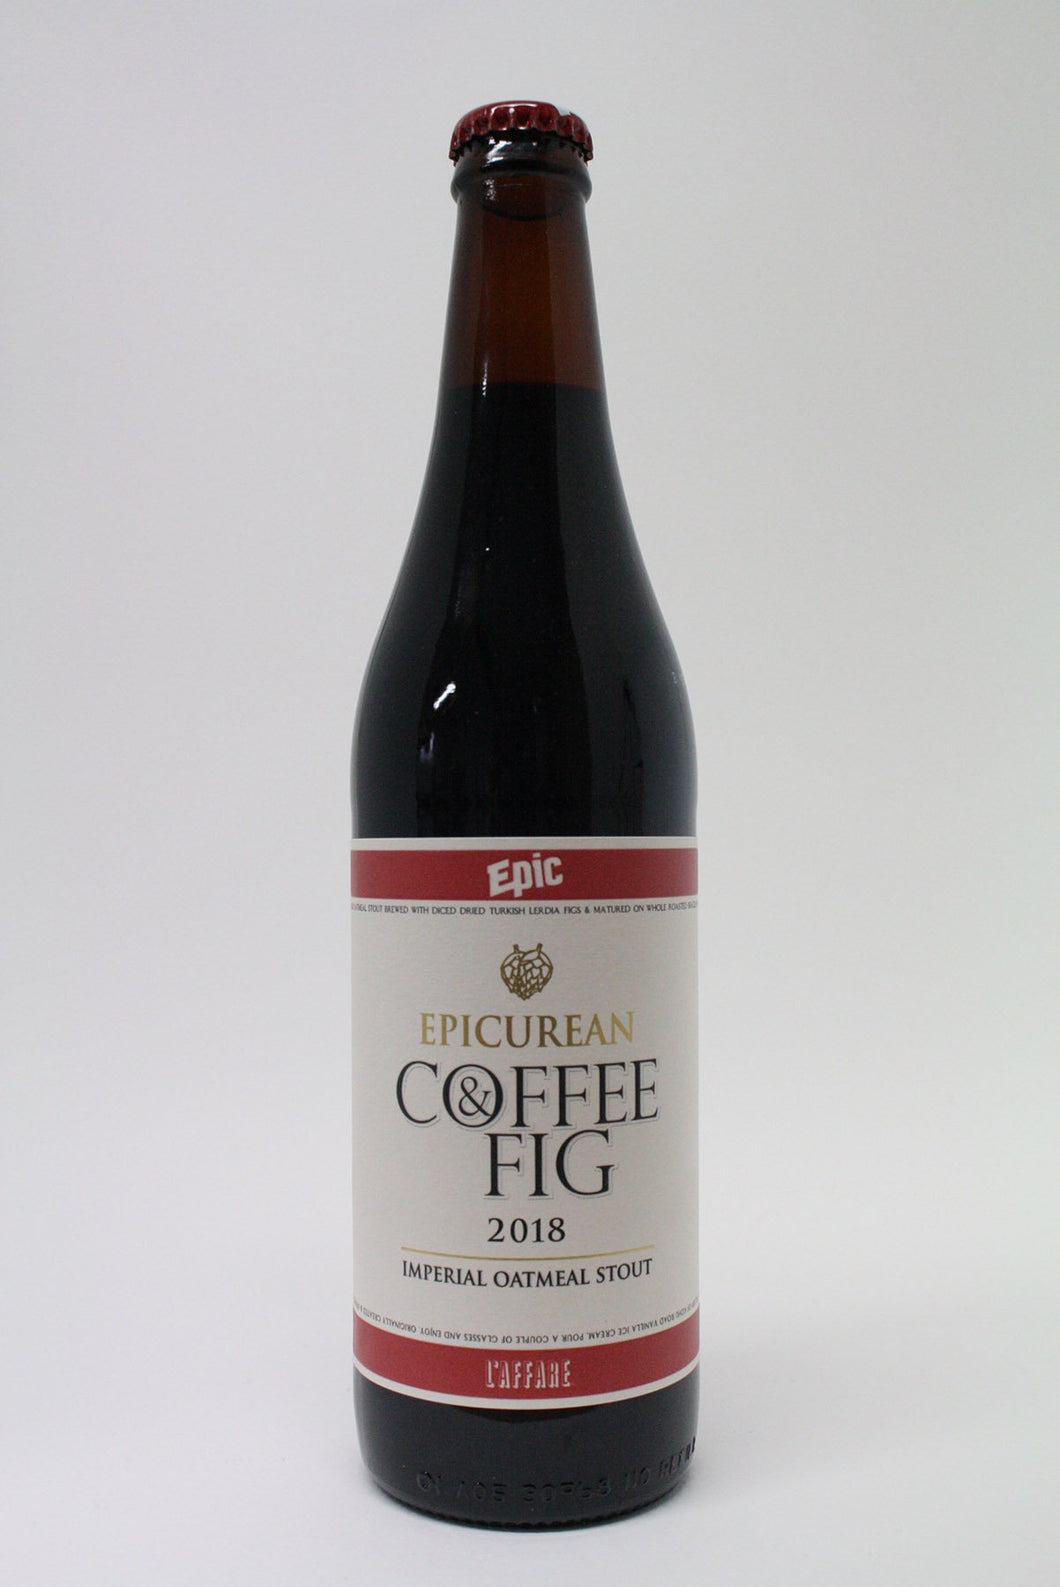 EPIC - Epicurean Coffee and Fig Oatmeal Stout 18 500ml